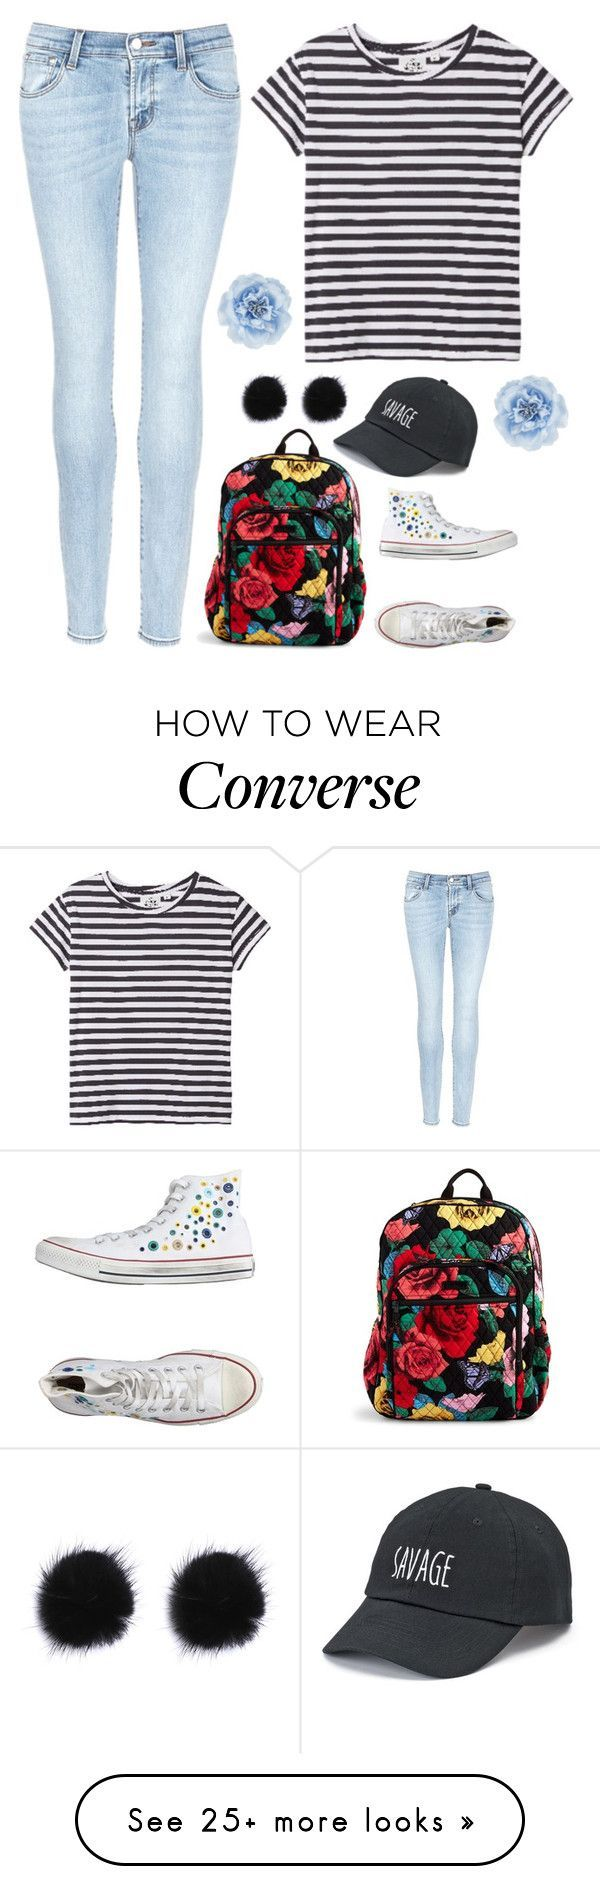 """What Should I Do For My Next Set?"" by treelights29 on Polyvore featuring Cheap Monday, J Brand, Vera Bradley, Converse, SO and Monsoon"